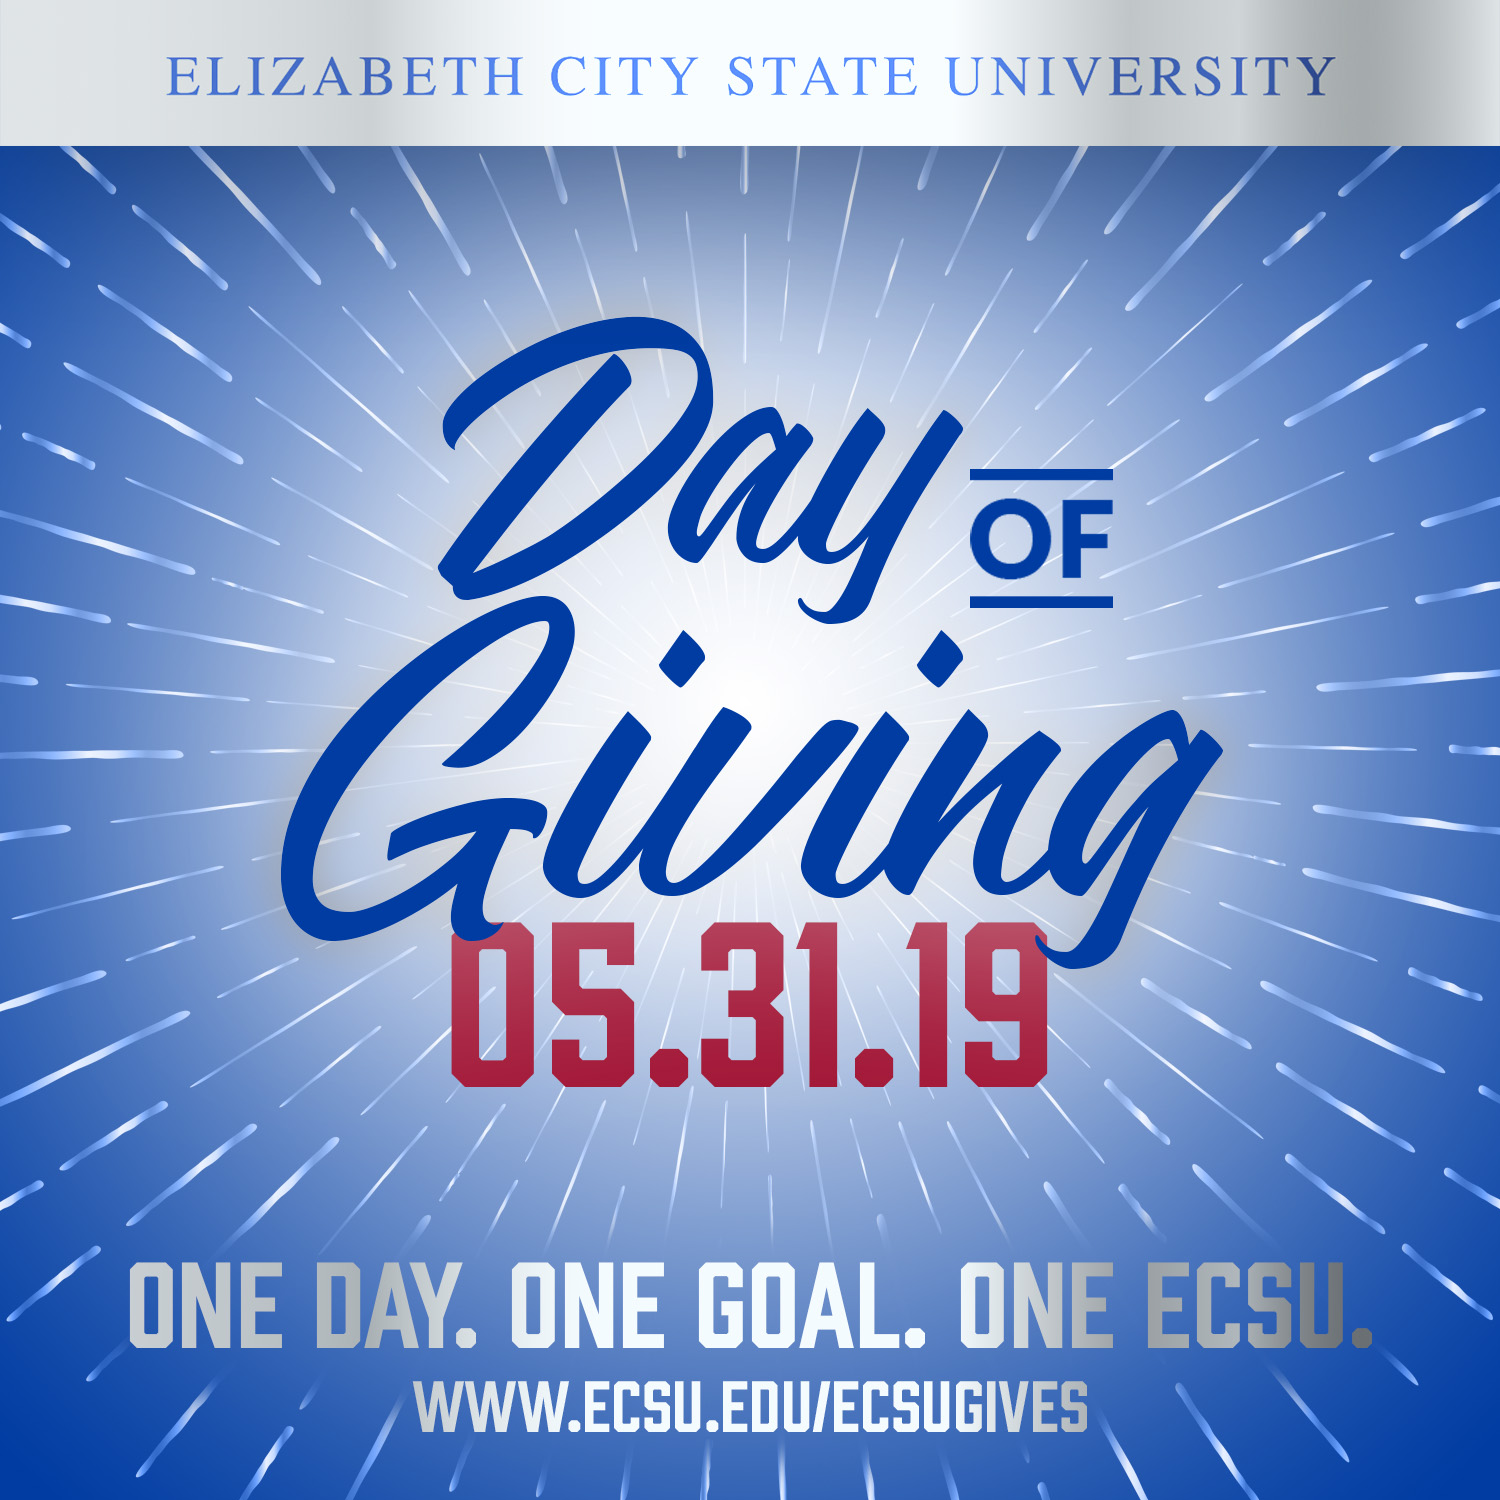 ECSU Day of Giving